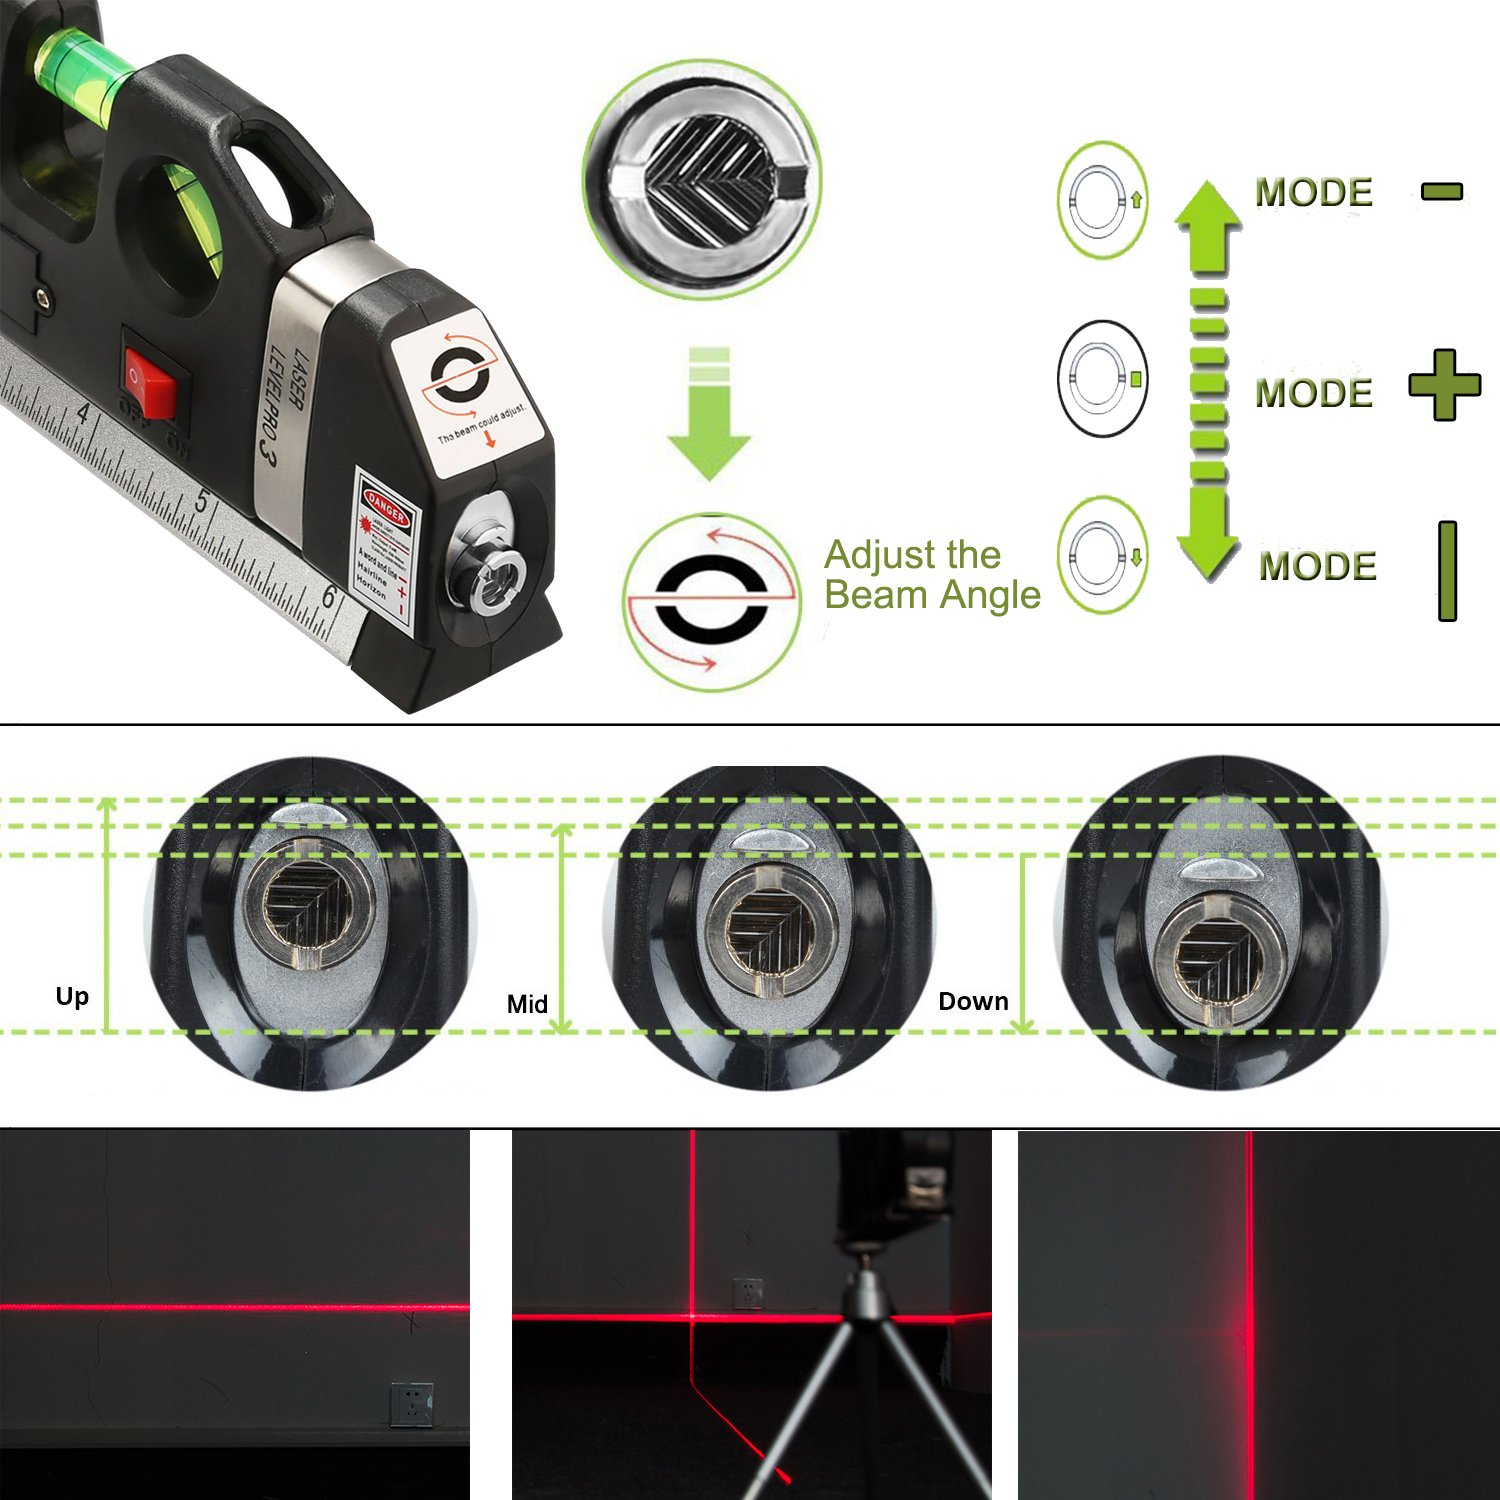 Y-Axis Multi-purpose Laser Level Measurement with Black Tripod Stand, 8ft Tape Measurement 3.5mV by Y-Axis (Image #3)